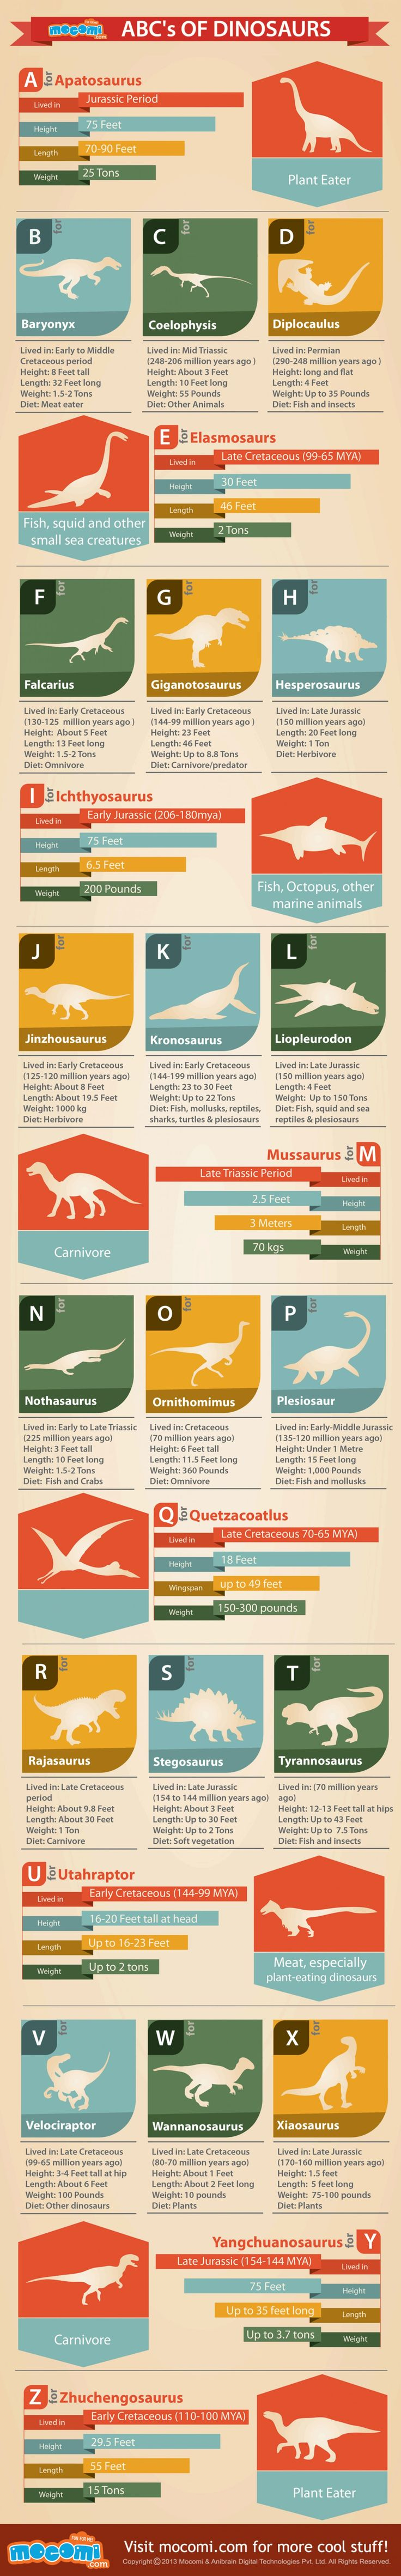 ABC's of Dinosaurs - A to Z Names of Dinosaurs Infographic